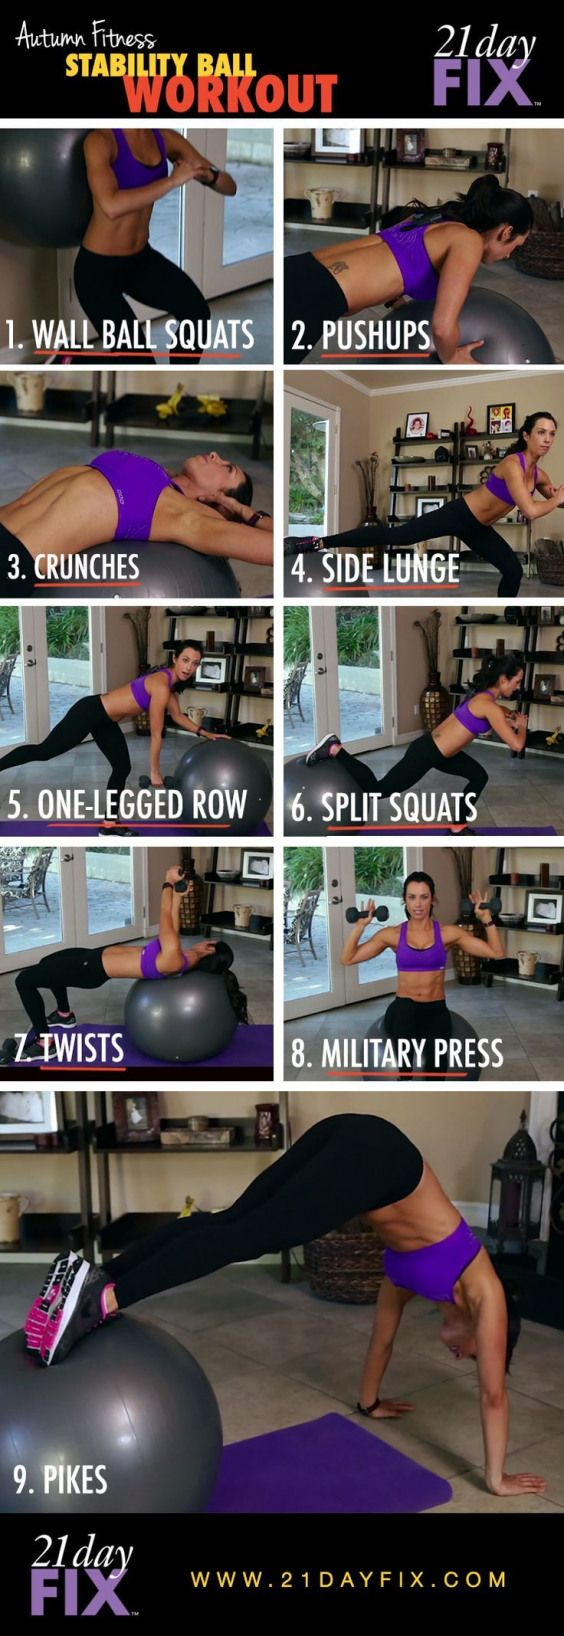 21 Day Fix special moves example to work out your entire